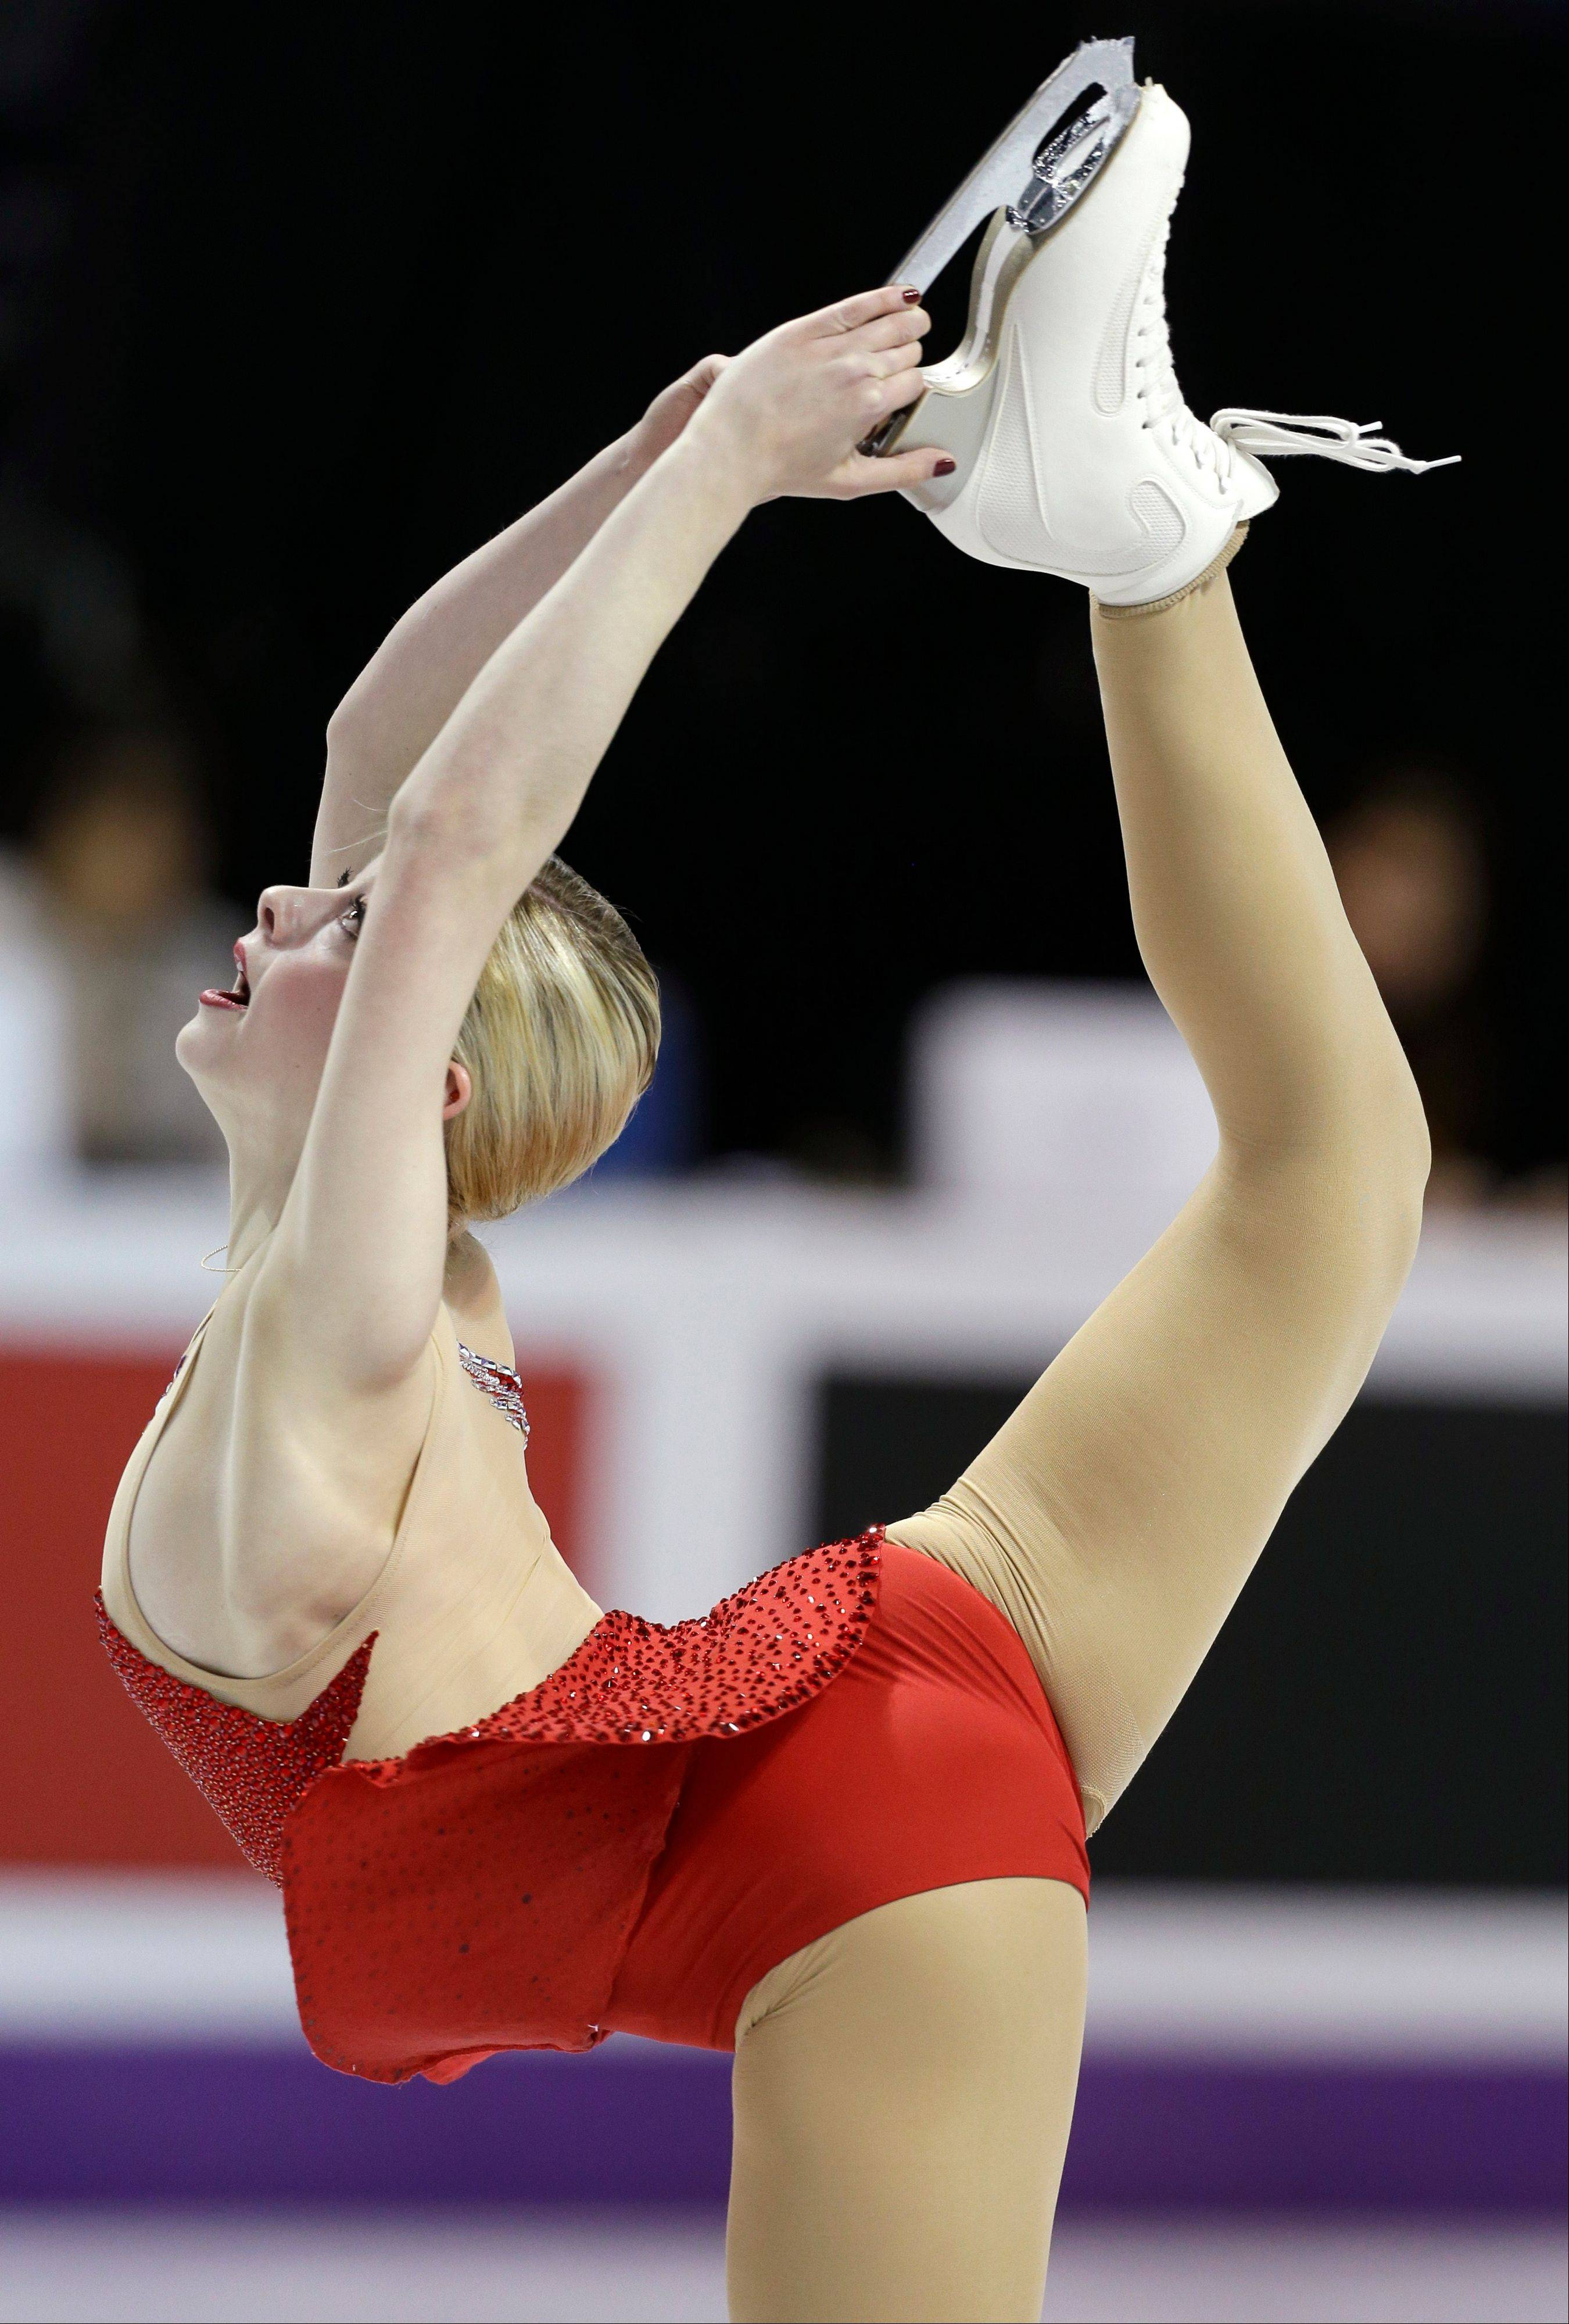 Gracie Gold of the United States performs during the ladies short program at the World Figure Skating Championships Thursday, March 14, 2013, in London, Ontario.